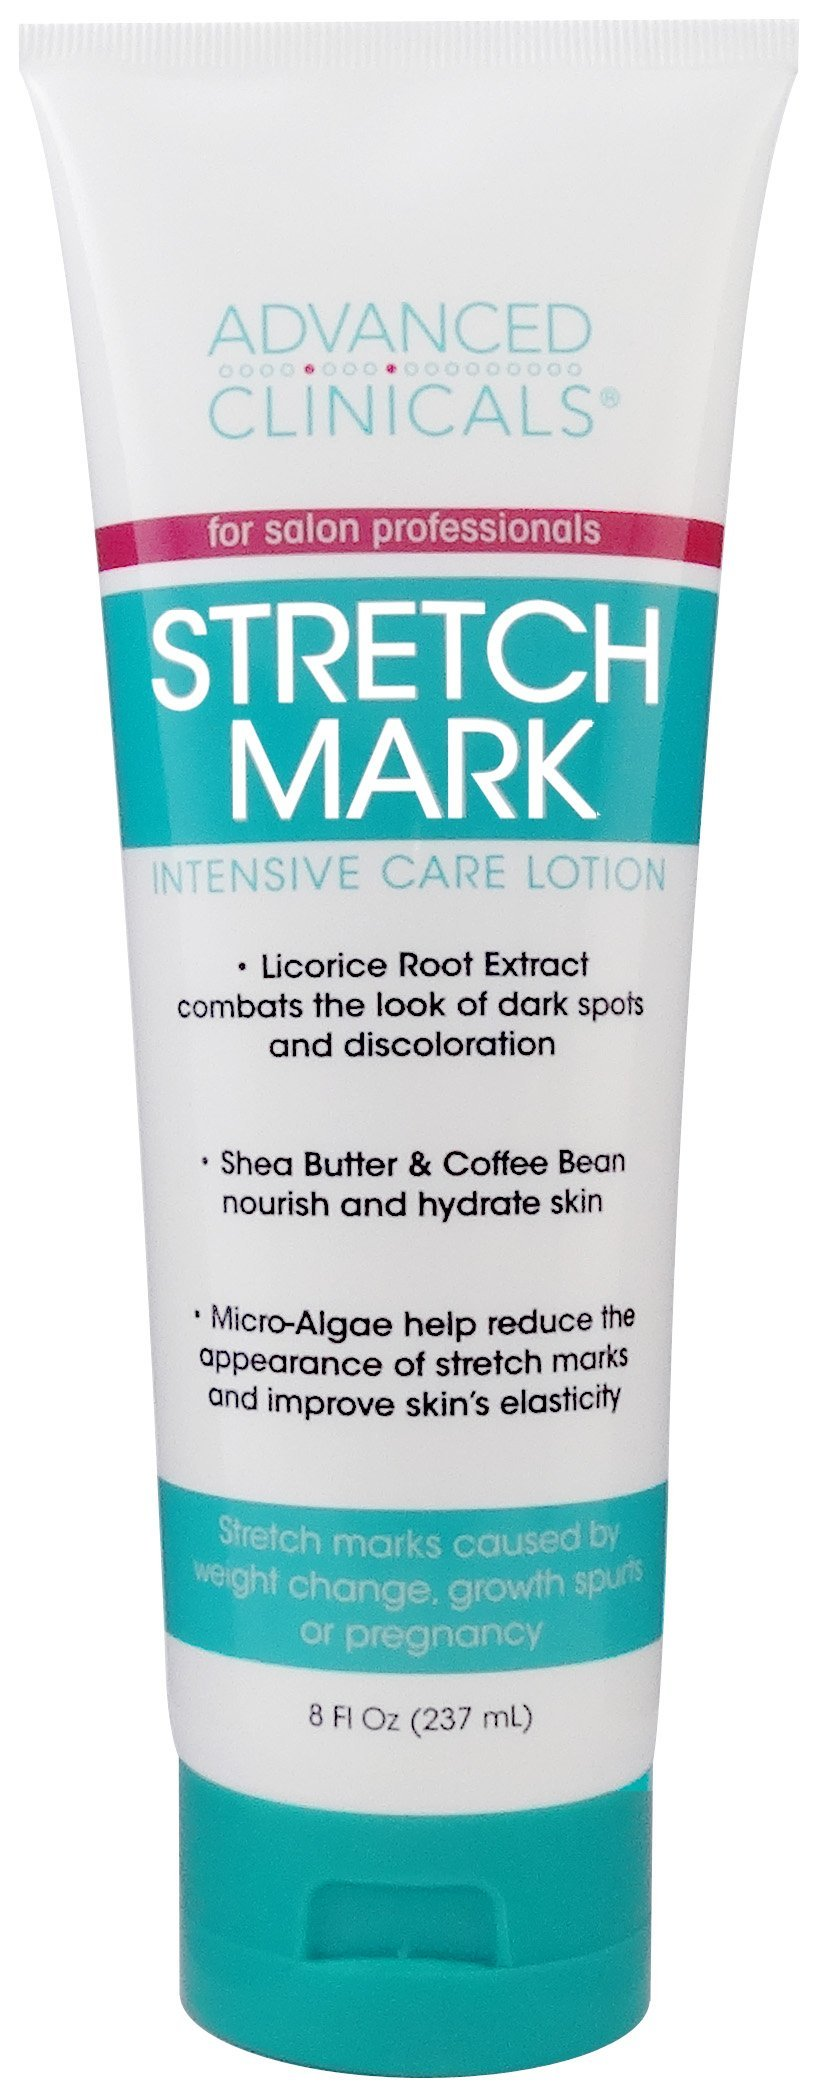 Advanced Clinicals Stretch Mark Lotion. Moisturizing Cream for Scars, Extreme Weight Loss, Pregnancy. 8oz Tube. by Advanced Clinicals